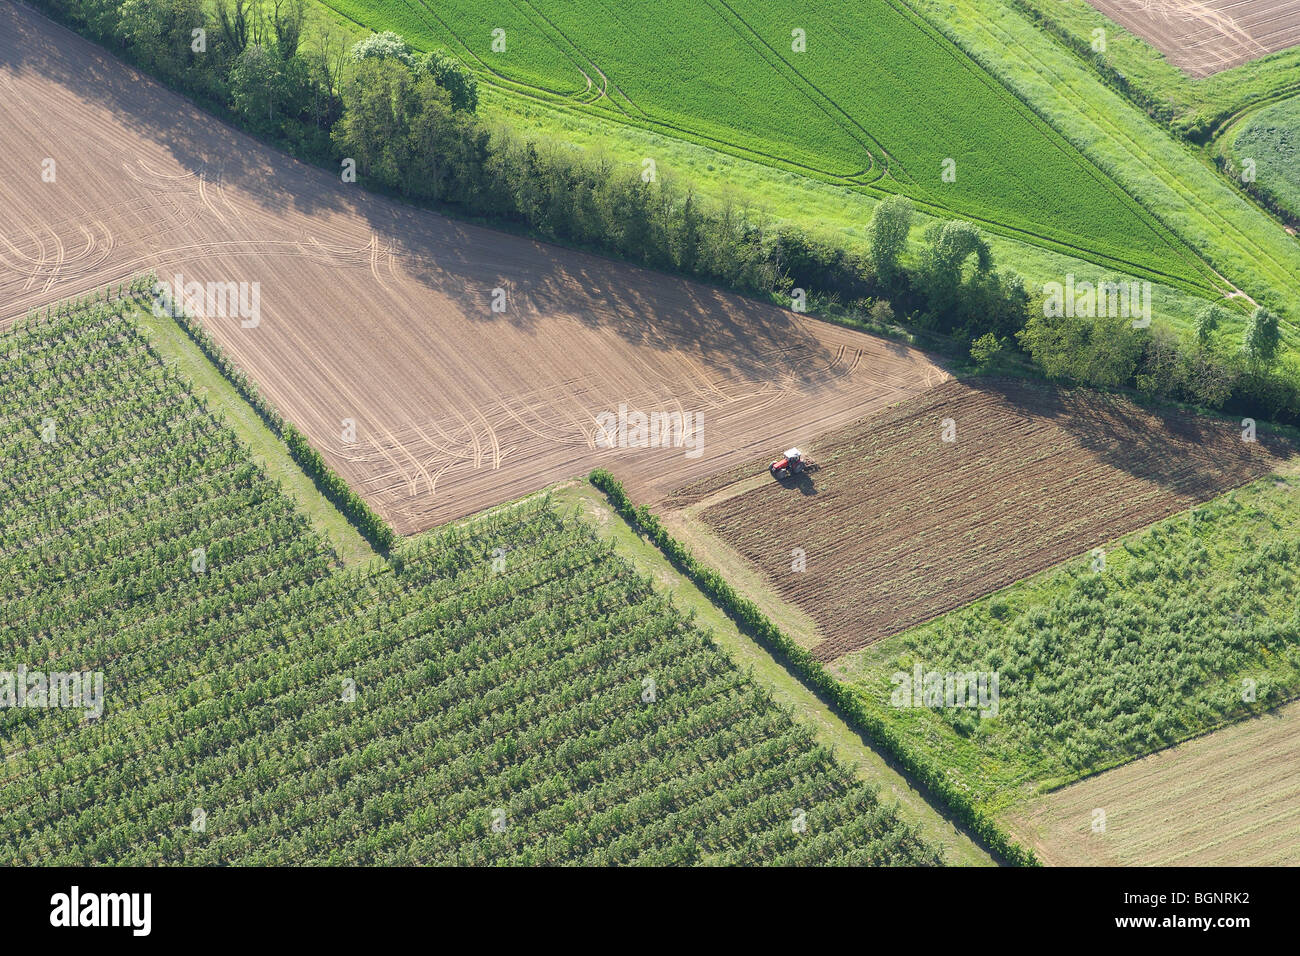 Tractor in agricultural area with fields, grasslands and hedges from the air, Belgium - Stock Image